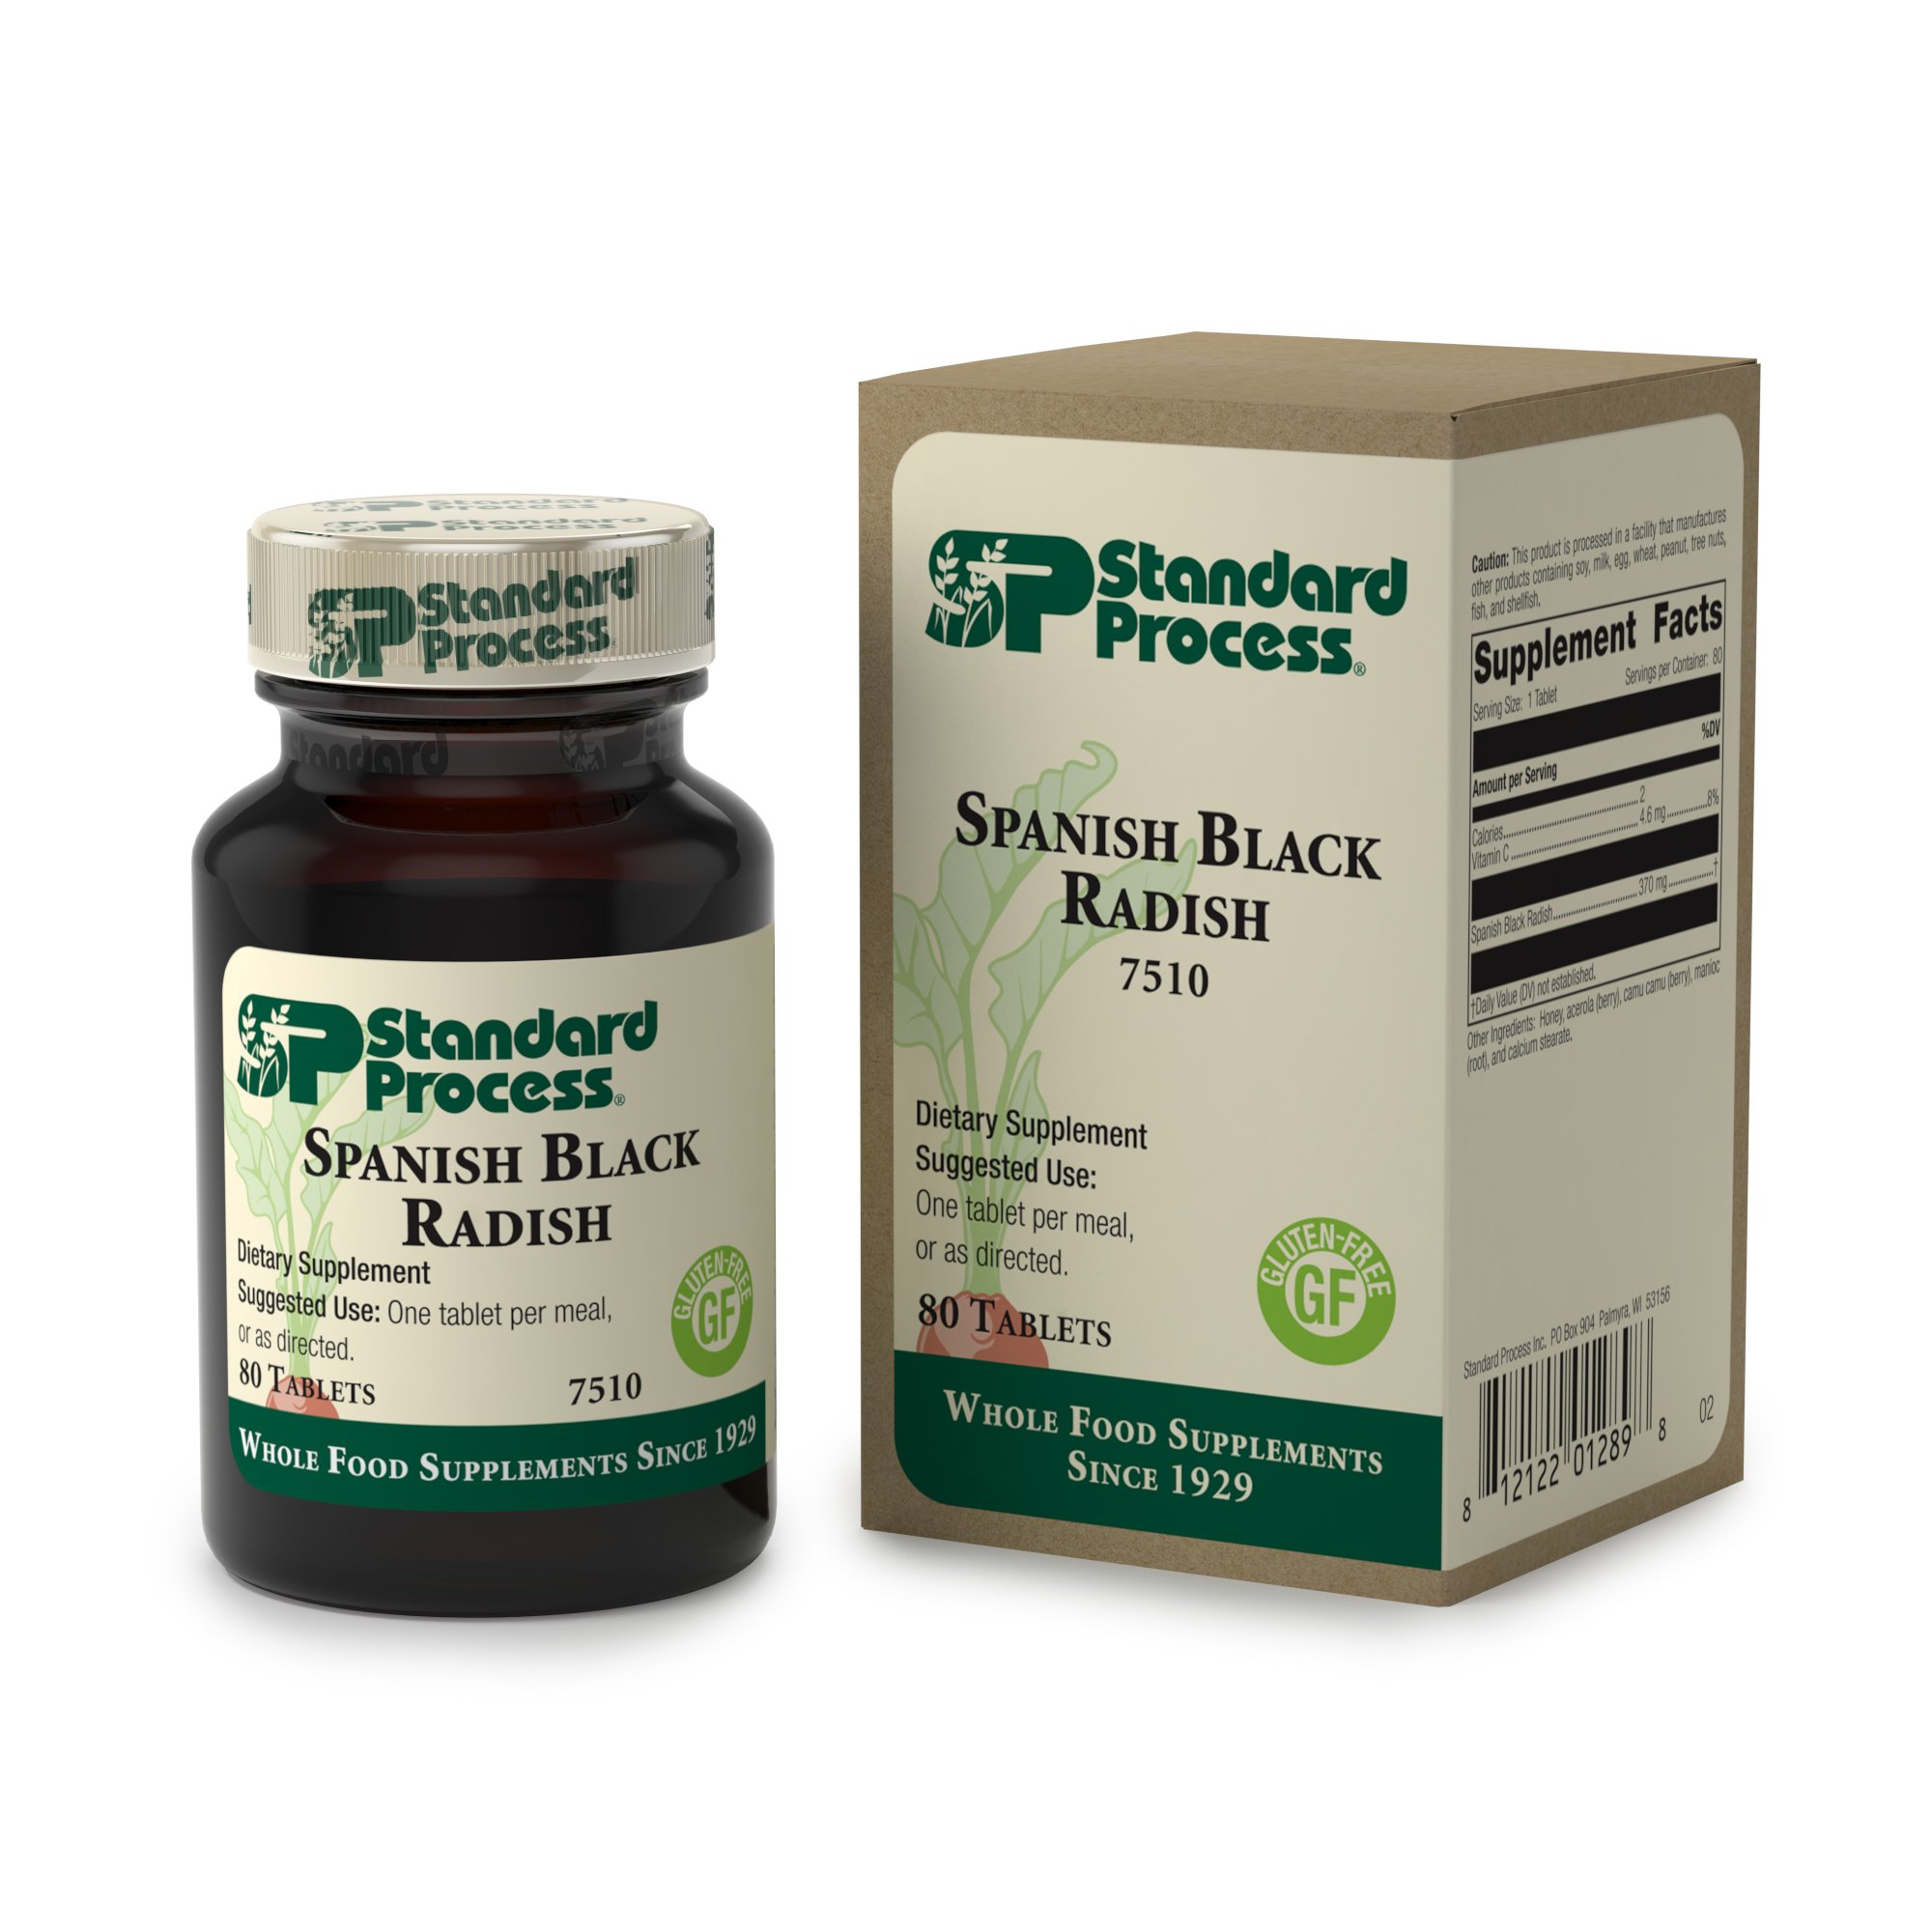 Standard Process - Spanish Black Radish - Supports Healthy Liver and Gallbladder Function, Digestion and Toxin-Elimination, Provides Vitamin C, Gluten Free and Vegetarian - 80 Tablets